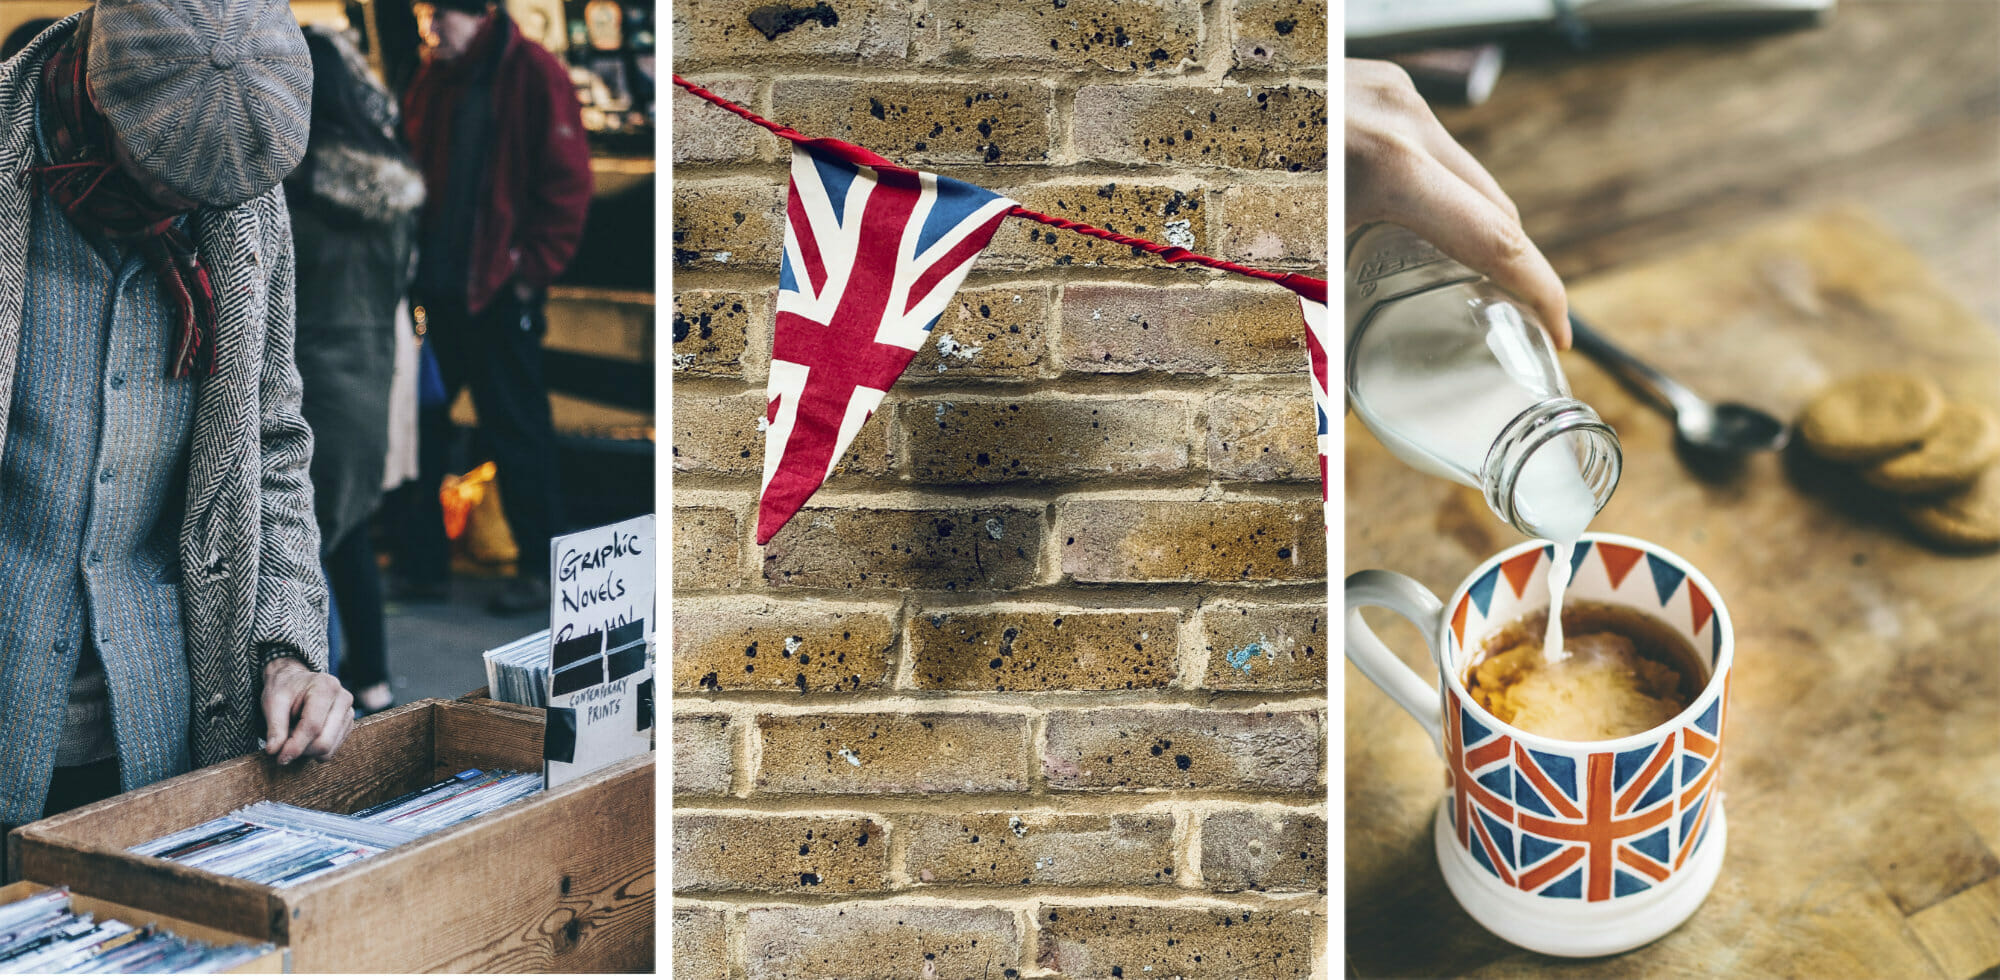 23+ Best Things to Buy in London: Best London Souvenirs via @girlsgonelondon